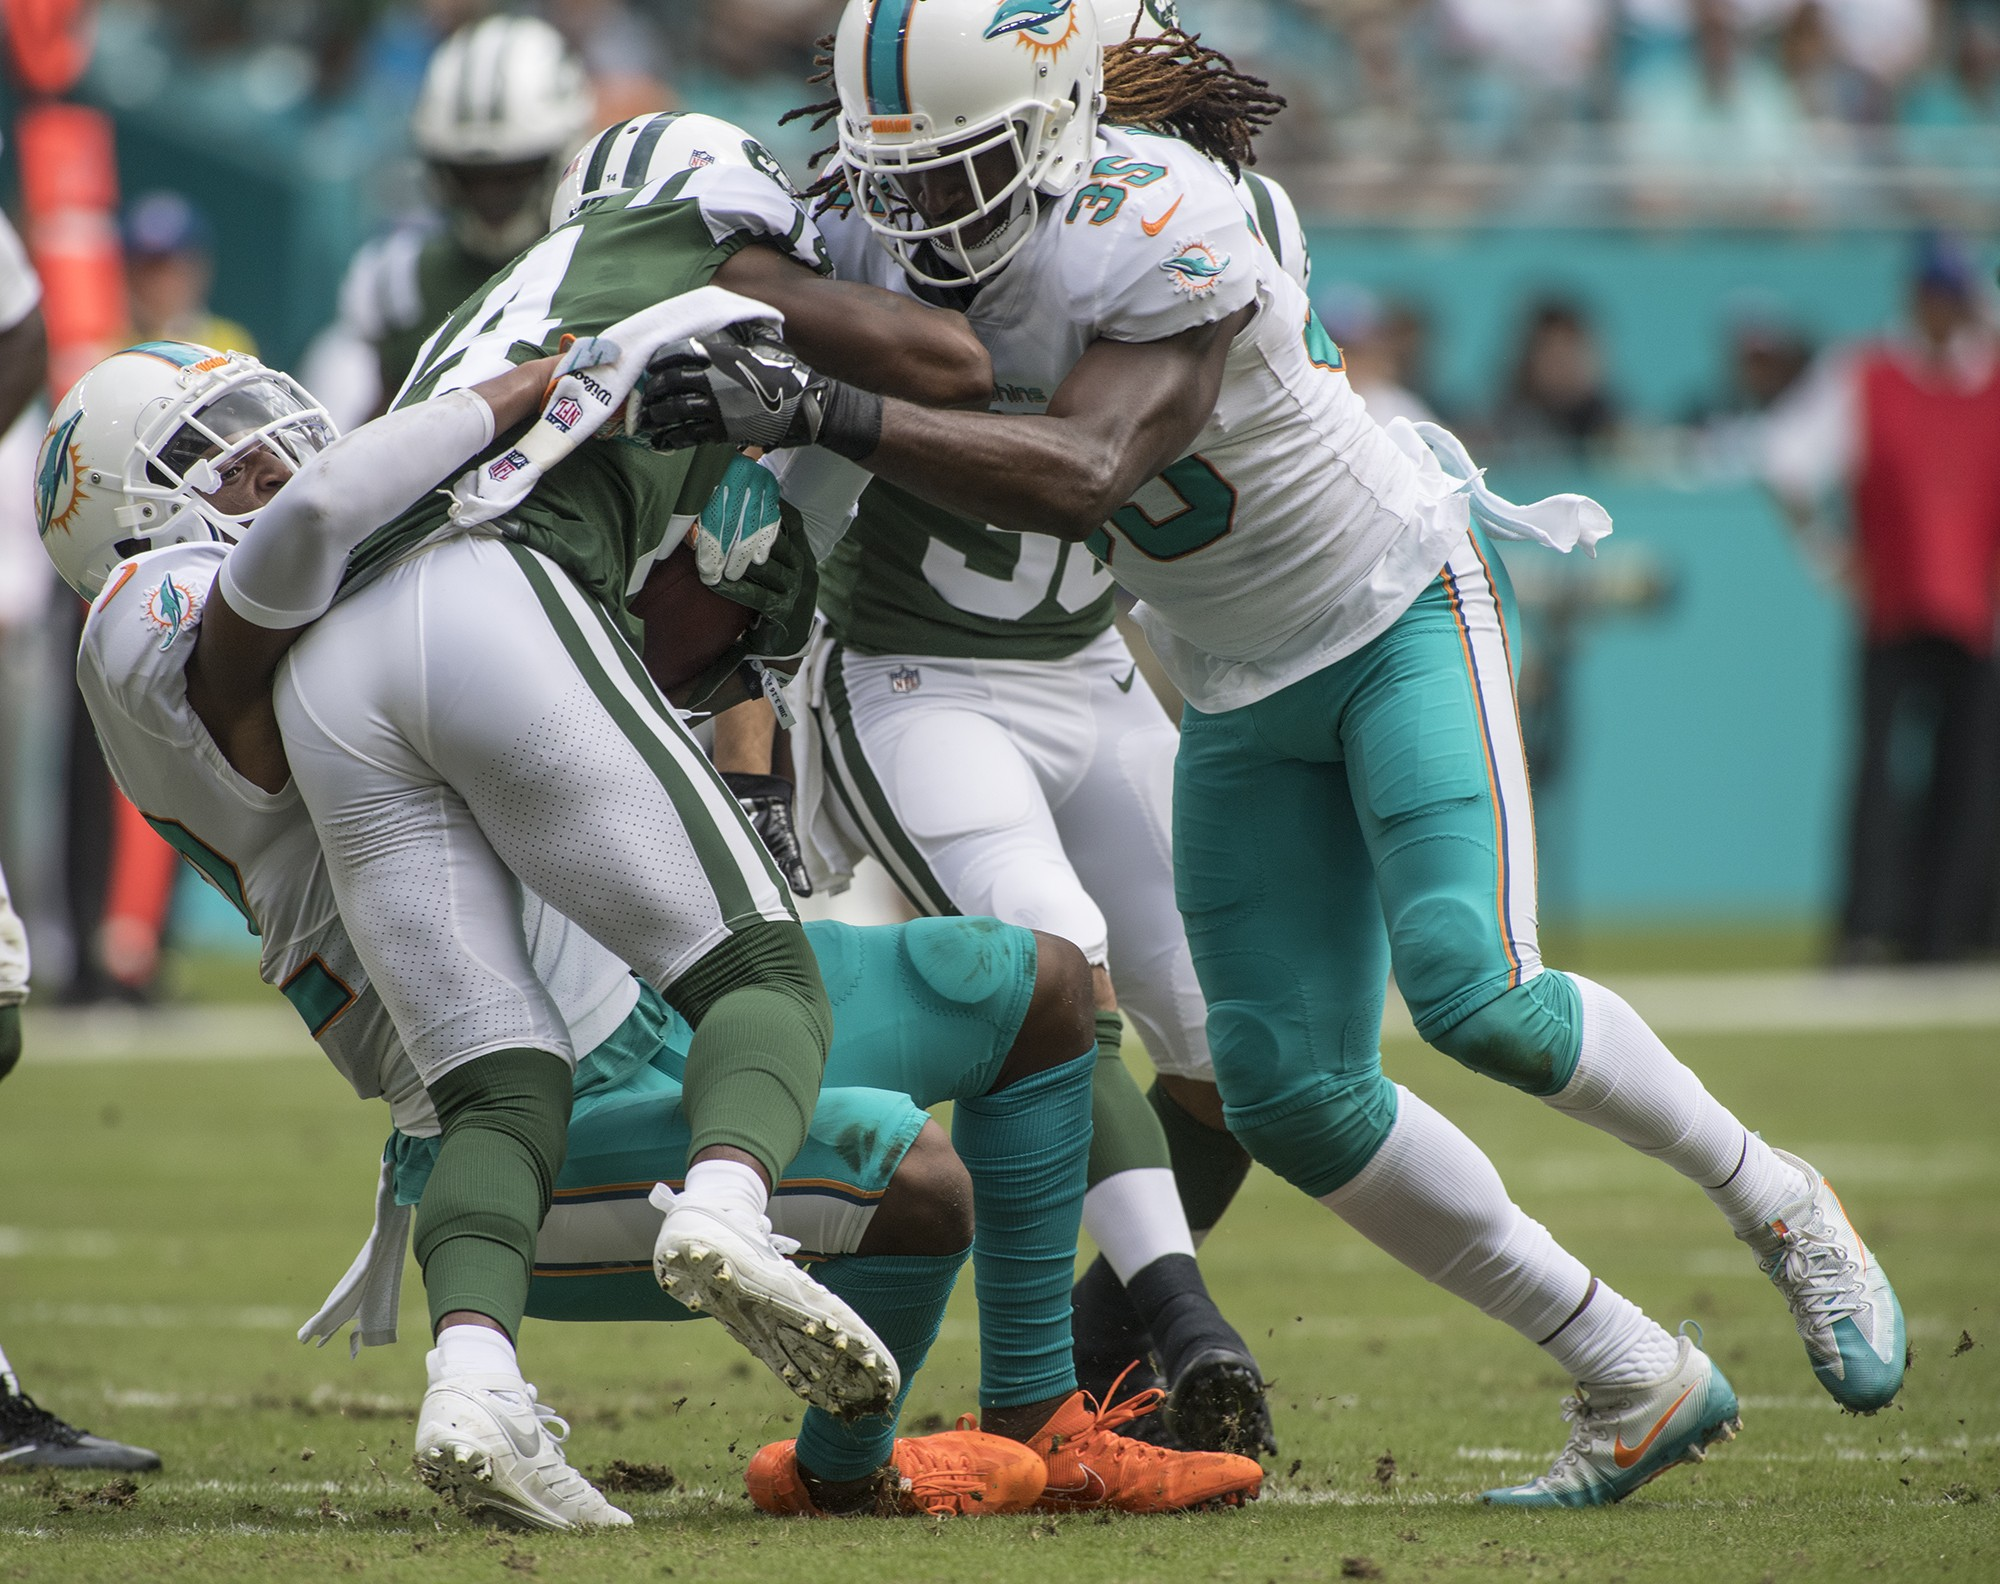 Miami Dolphins running back Kenyan Drake (32) and Miami Dolphins free safety Walt Aikens (35) bring down New York Jets wide receiver Jeremy Kerley (14) during 1st half play of an NFL football game on Sunday, Oct. 22, 2017, in Miami Gardens, Fla. The Miami Dolphins went on to defeat the New York Jets 31-28. (Donald Edgar/El Latino Digital)